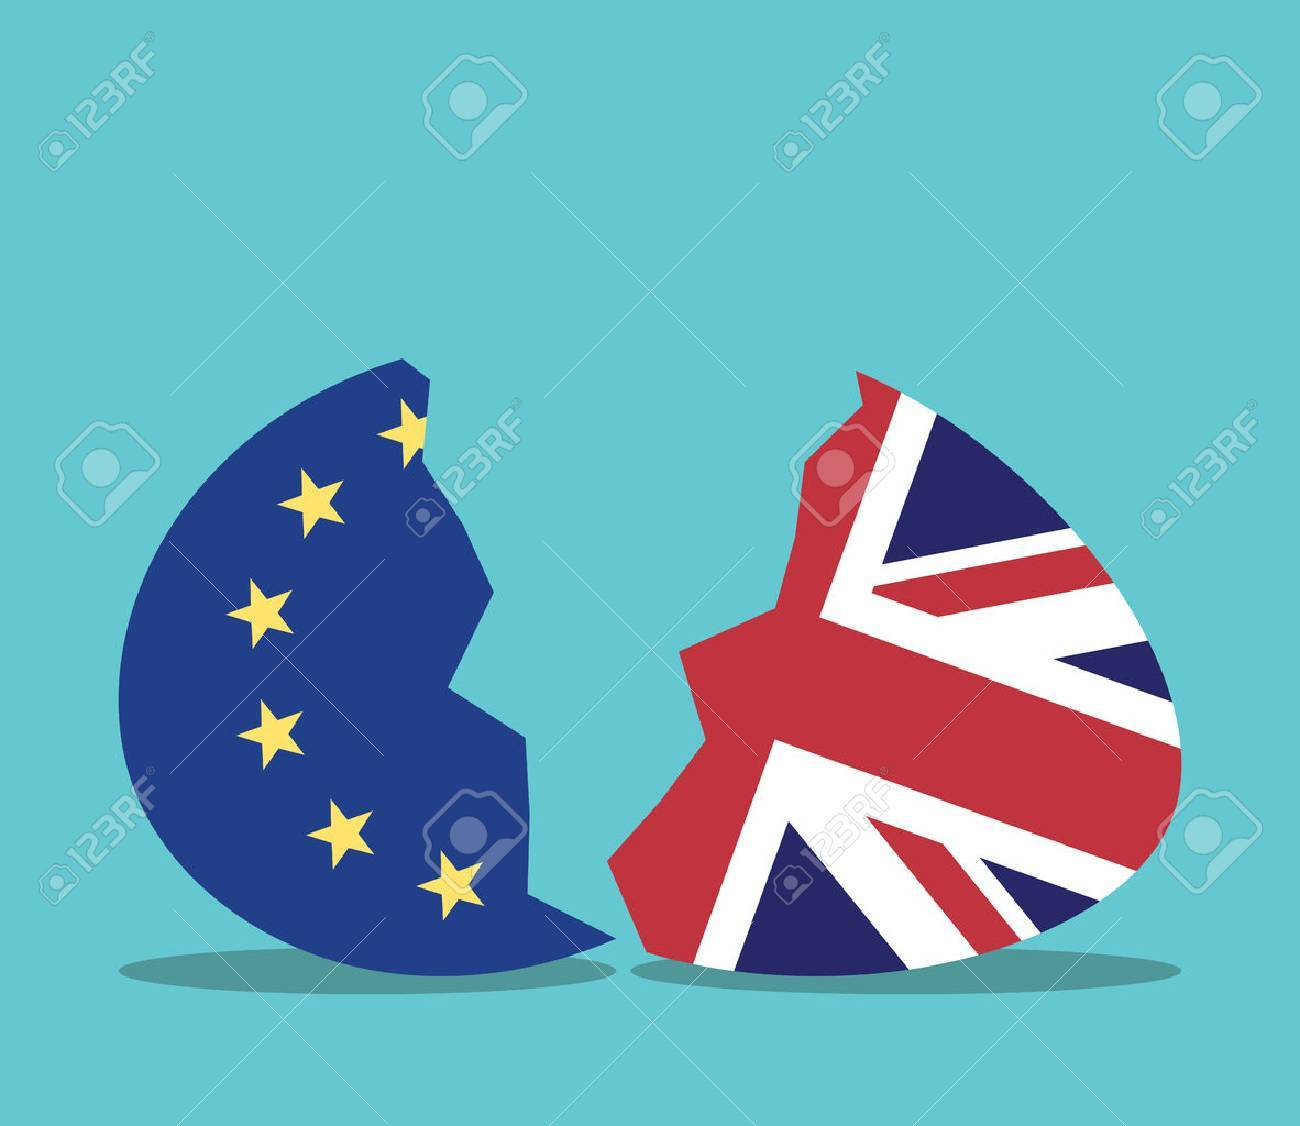 European Union and United Kingdom conceptual egg cracking in two halves. Europe, politics and economics concept. Flat design. EPS 8 vector illustration, no transparency - 65300467